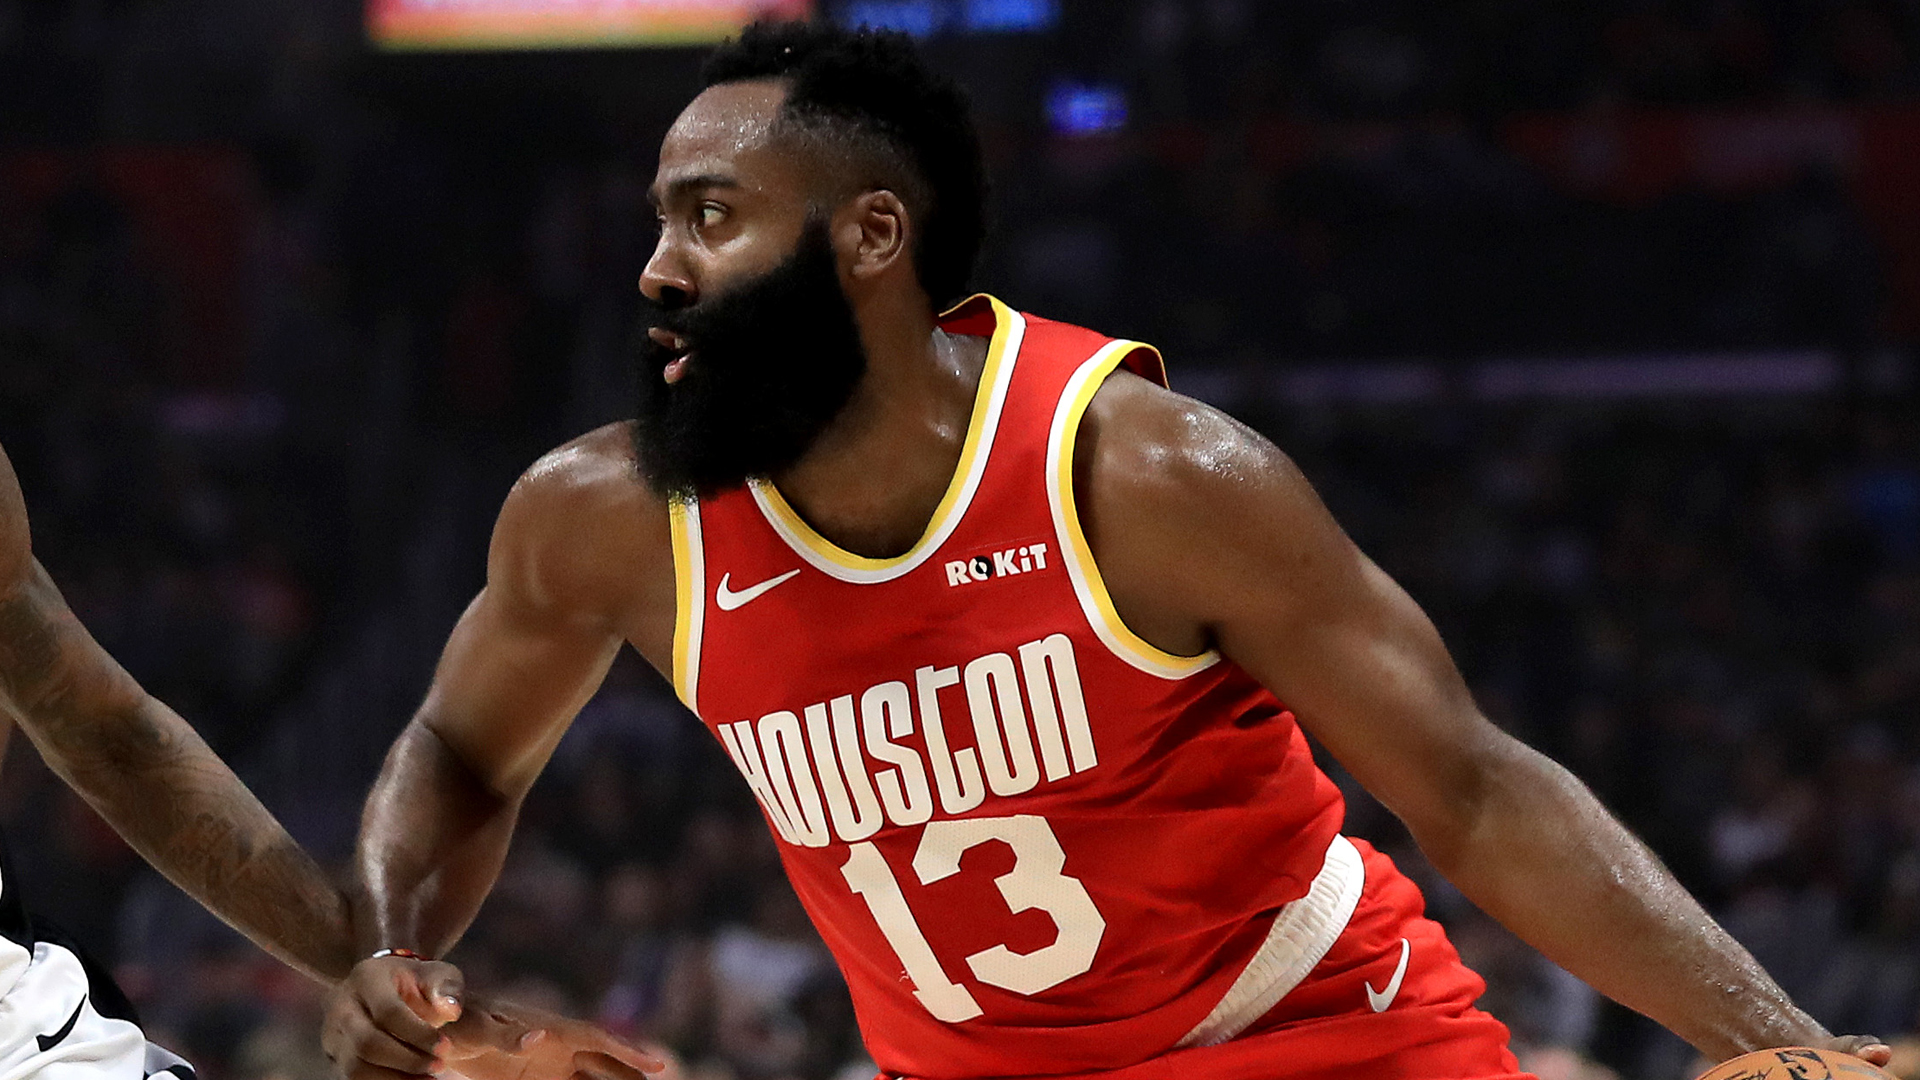 James Harden was lauded by Mike D'Antoni after leading the Houston Rockets past the Atlanta Hawks.